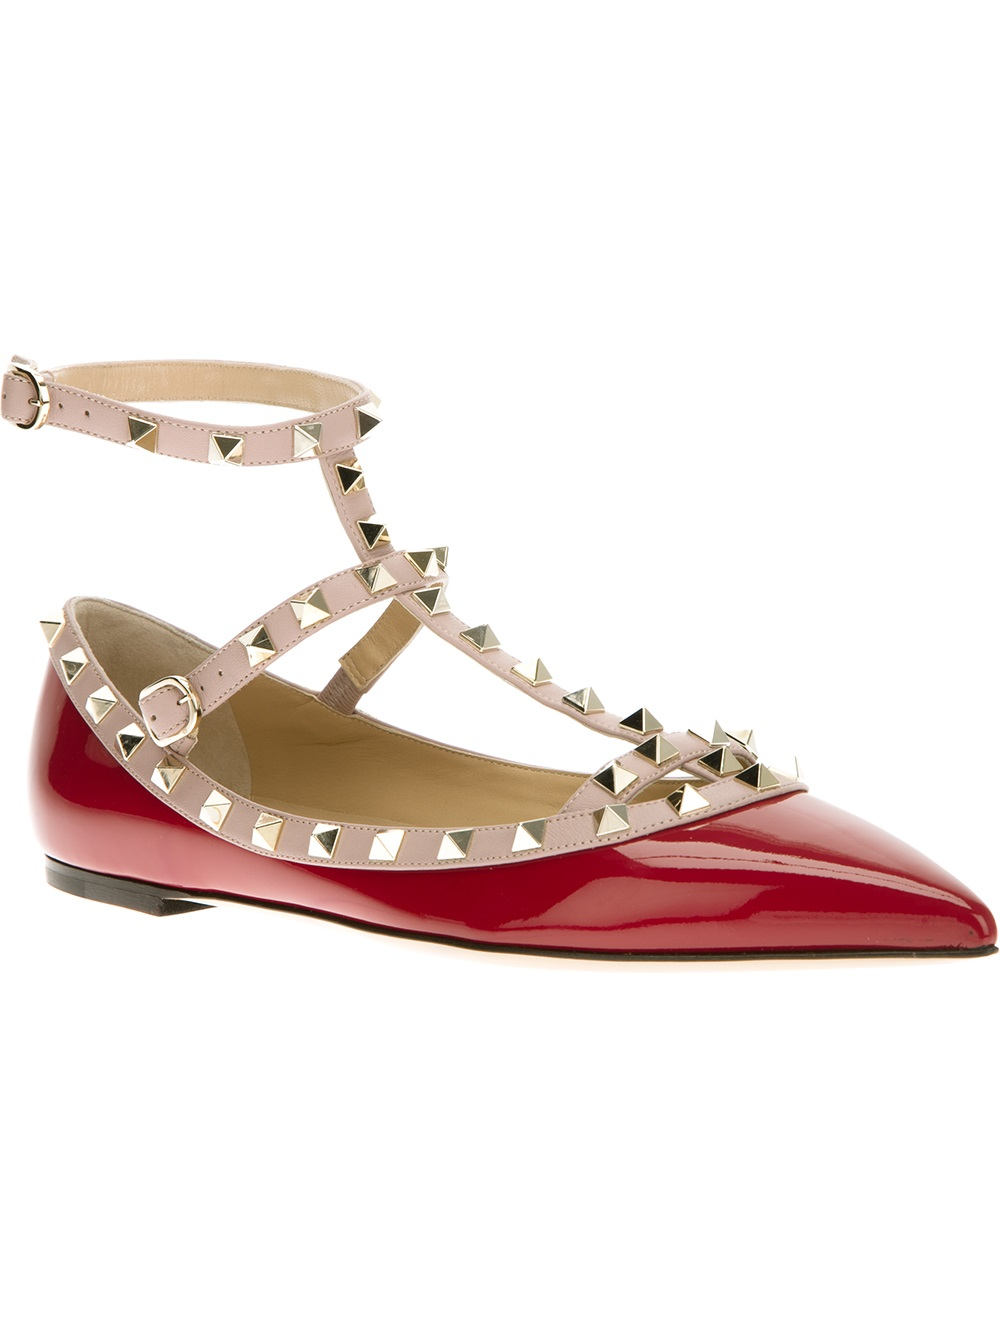 Lyst Valentino Studded Shoe In Red